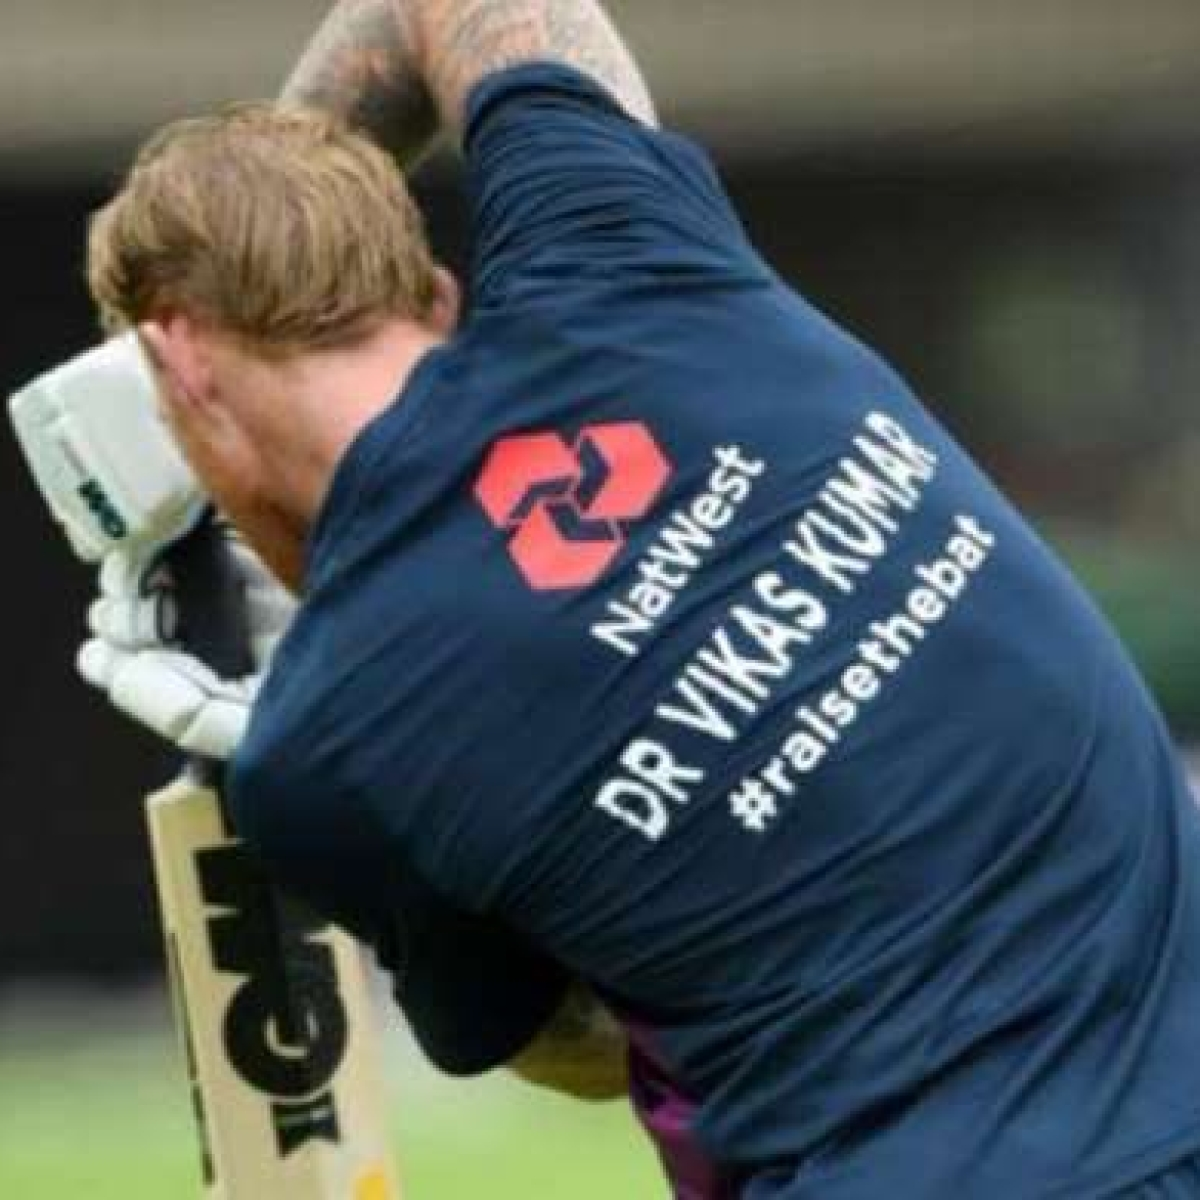 England skipper Ben Stokes wears jersey with Indian origin Dr Vikas Kumar's name